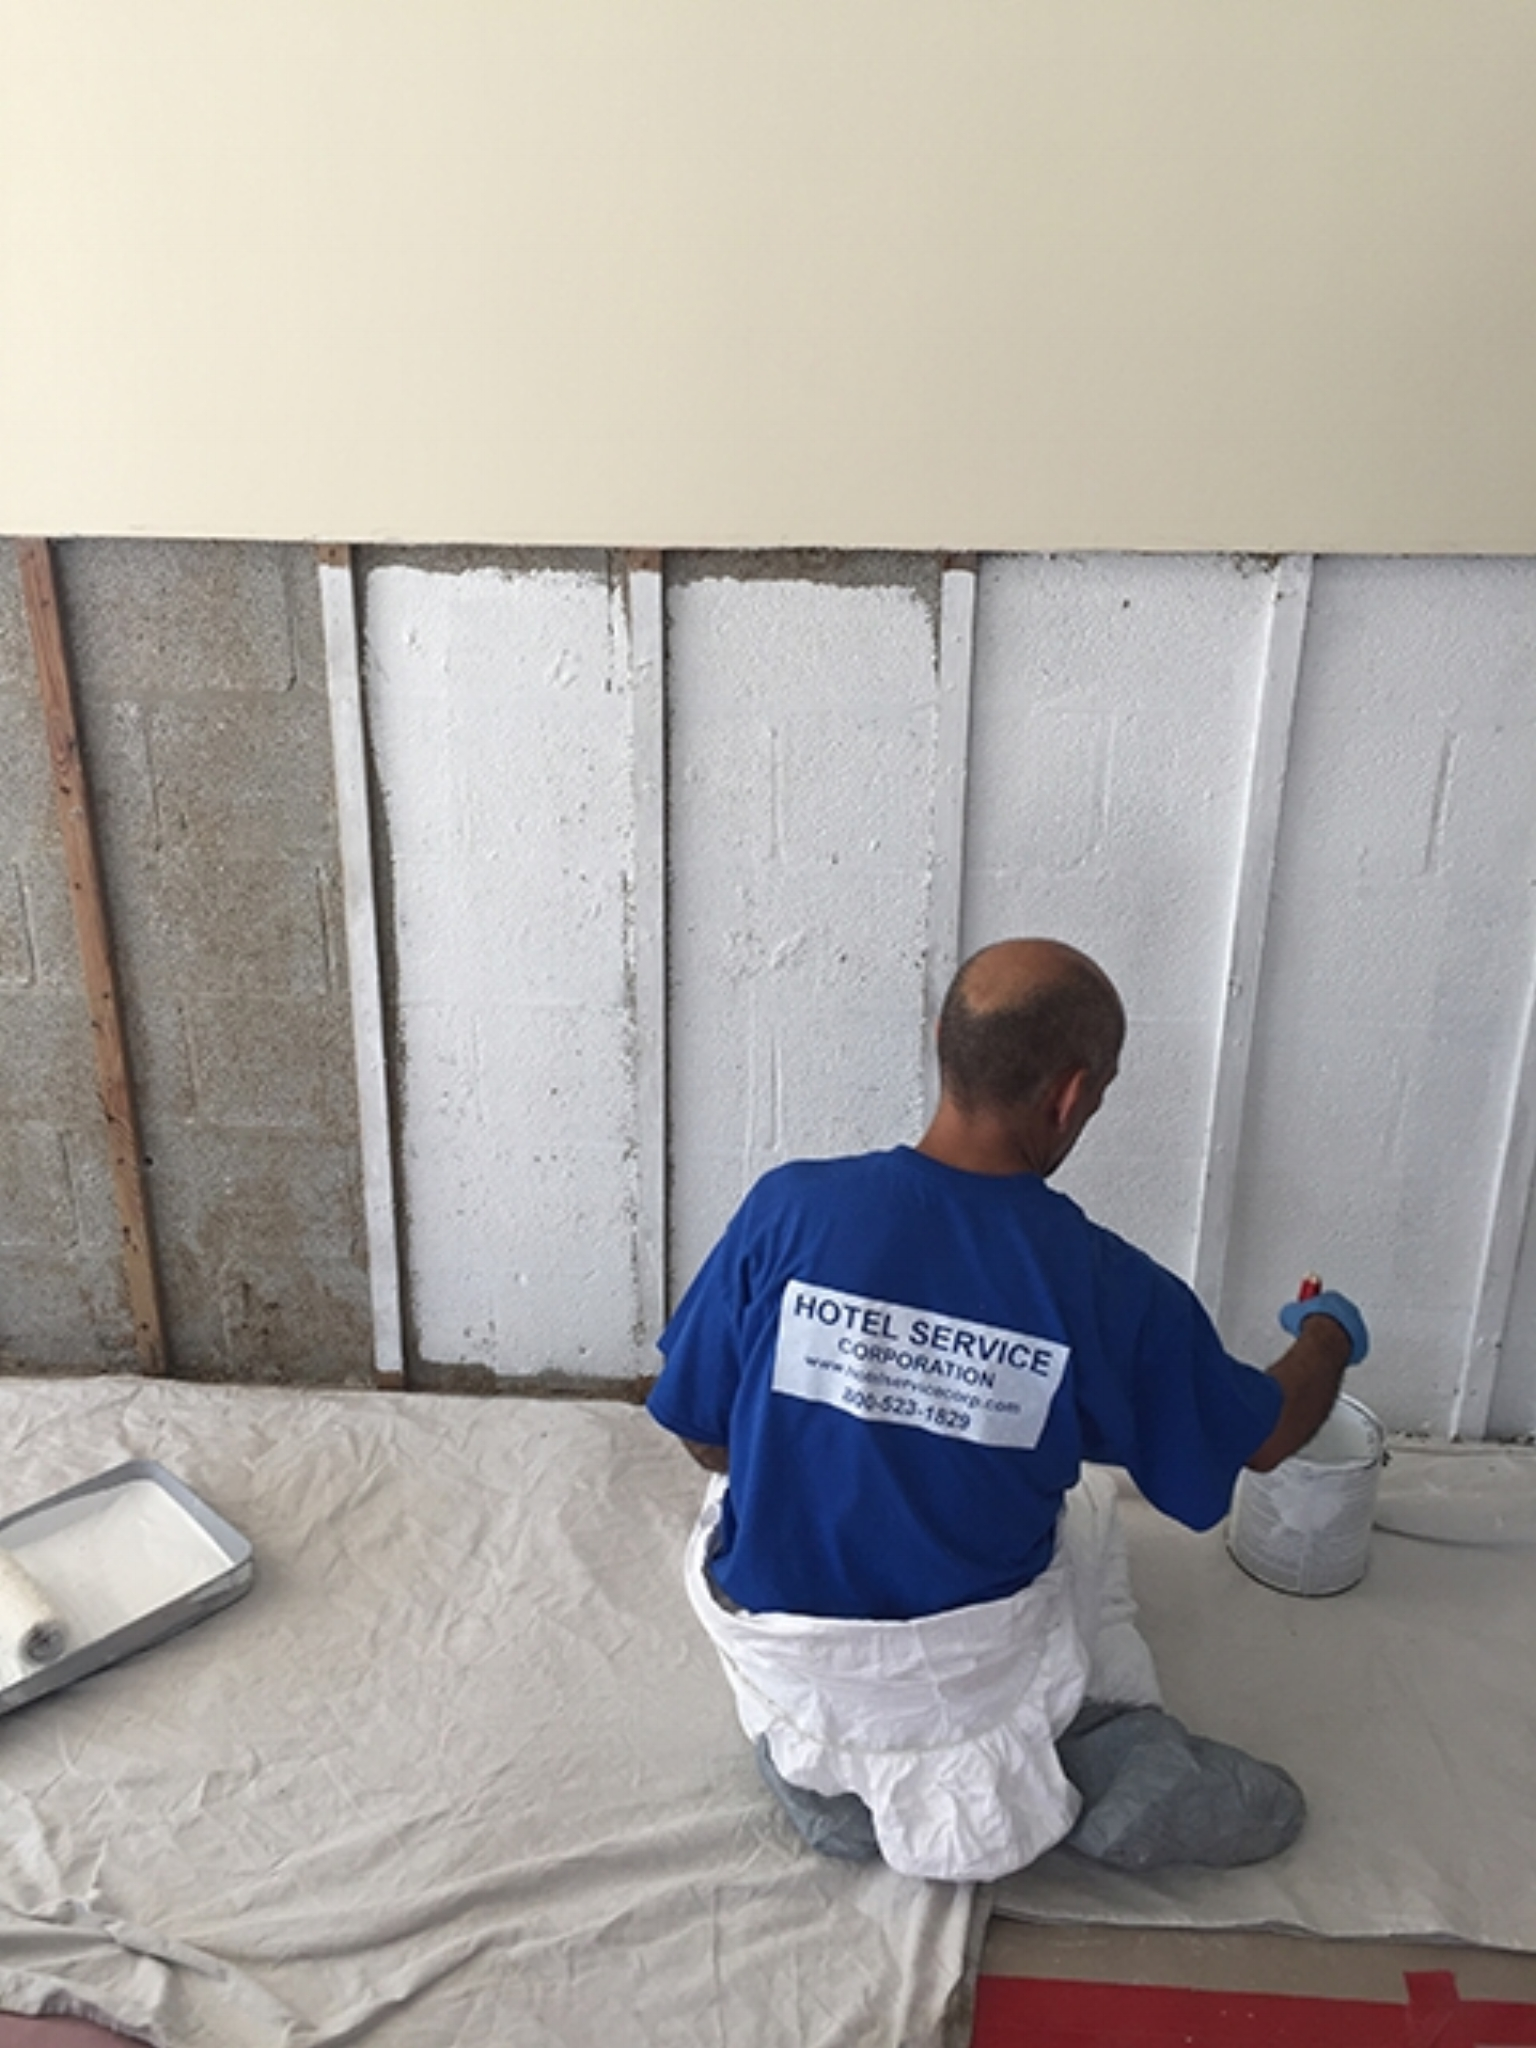 Applying fosters 40/20 encapsulation on a wall prior to replacement of drywall